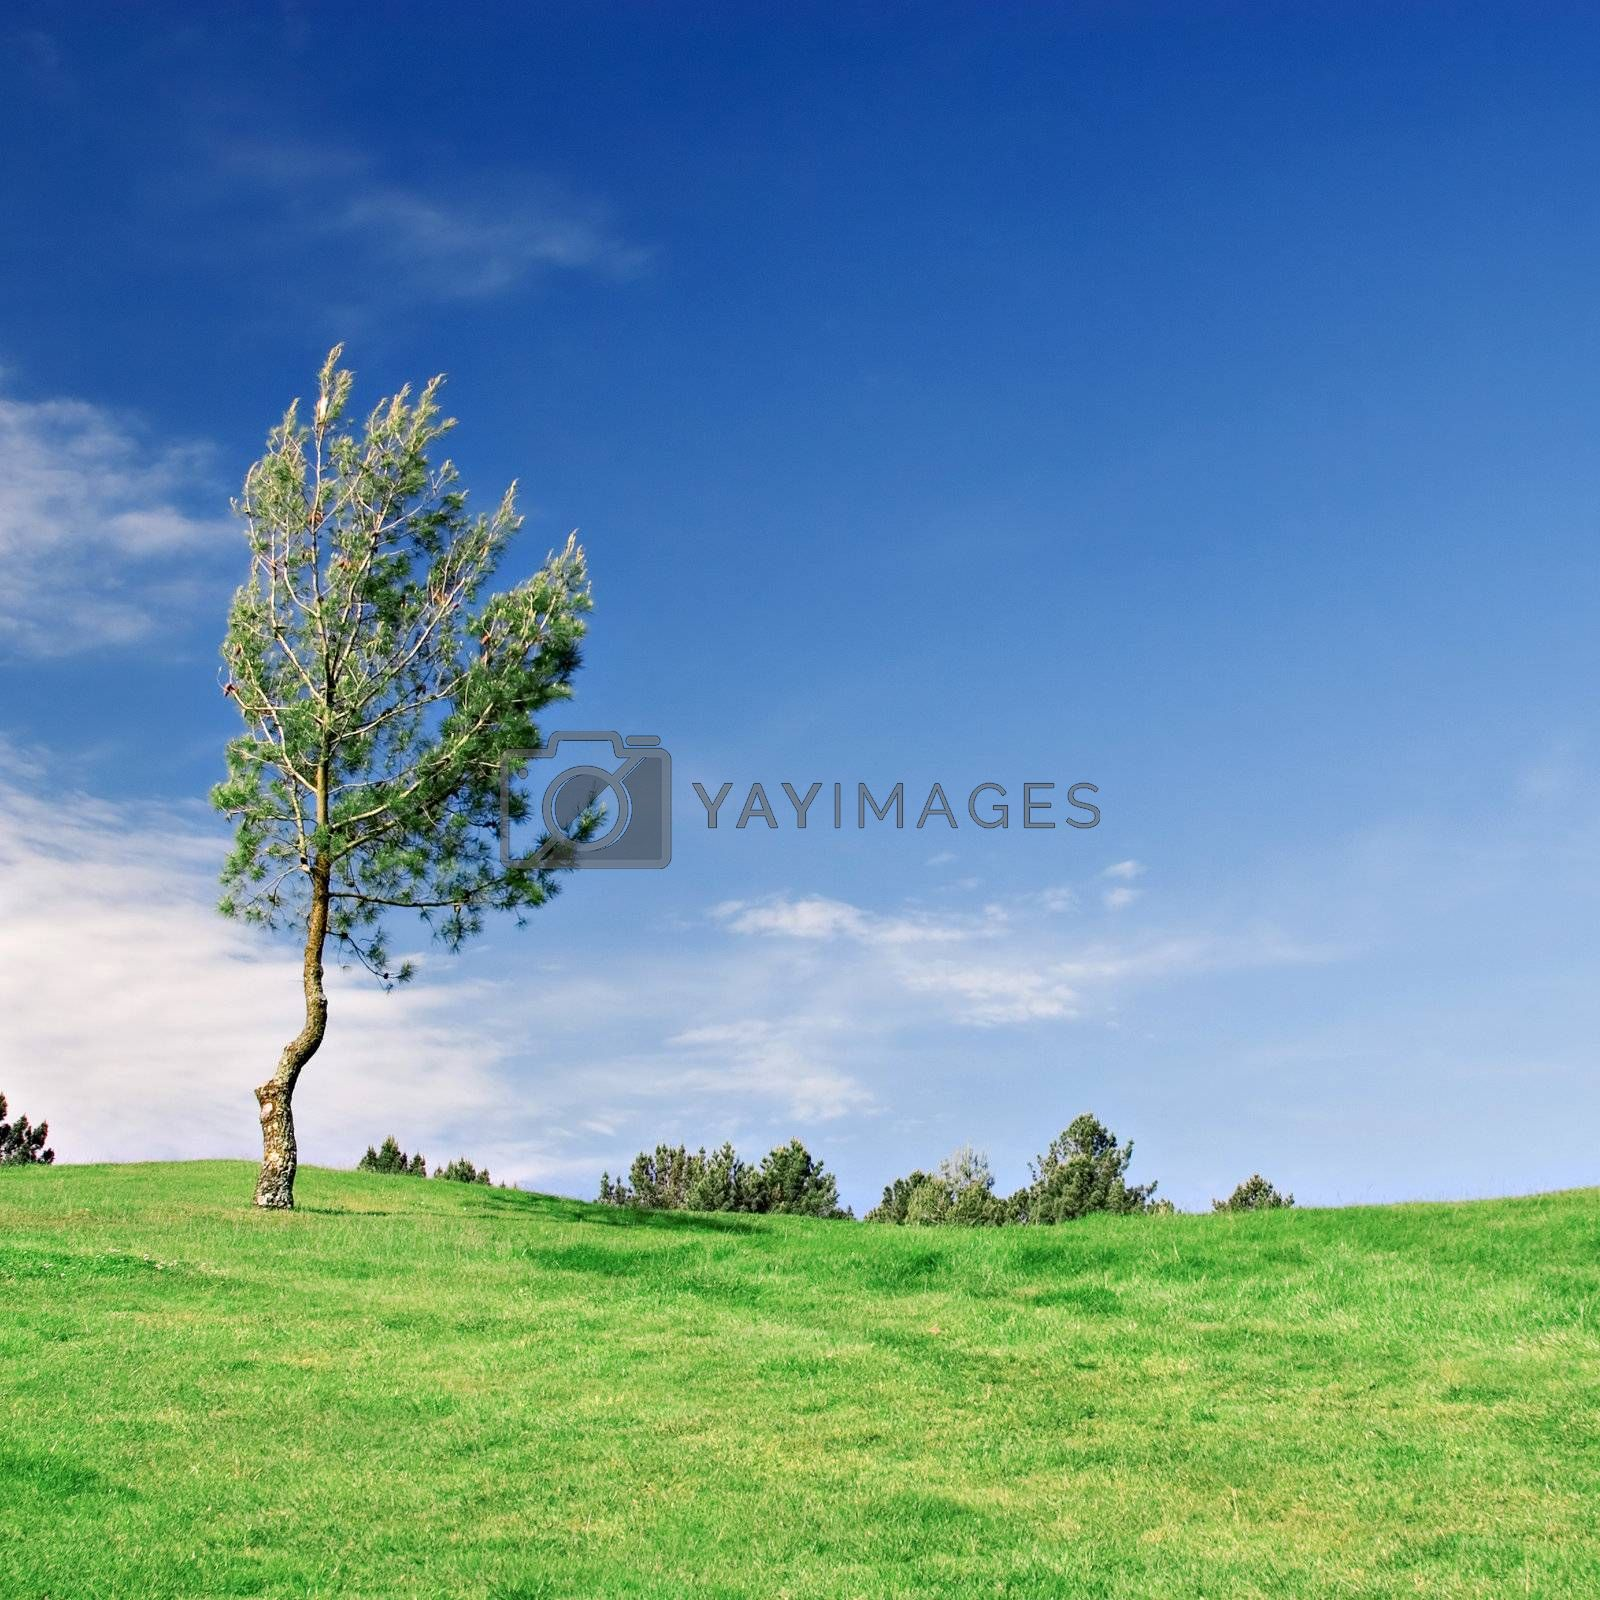 Royalty free image of Pine Tree on green field by ajn